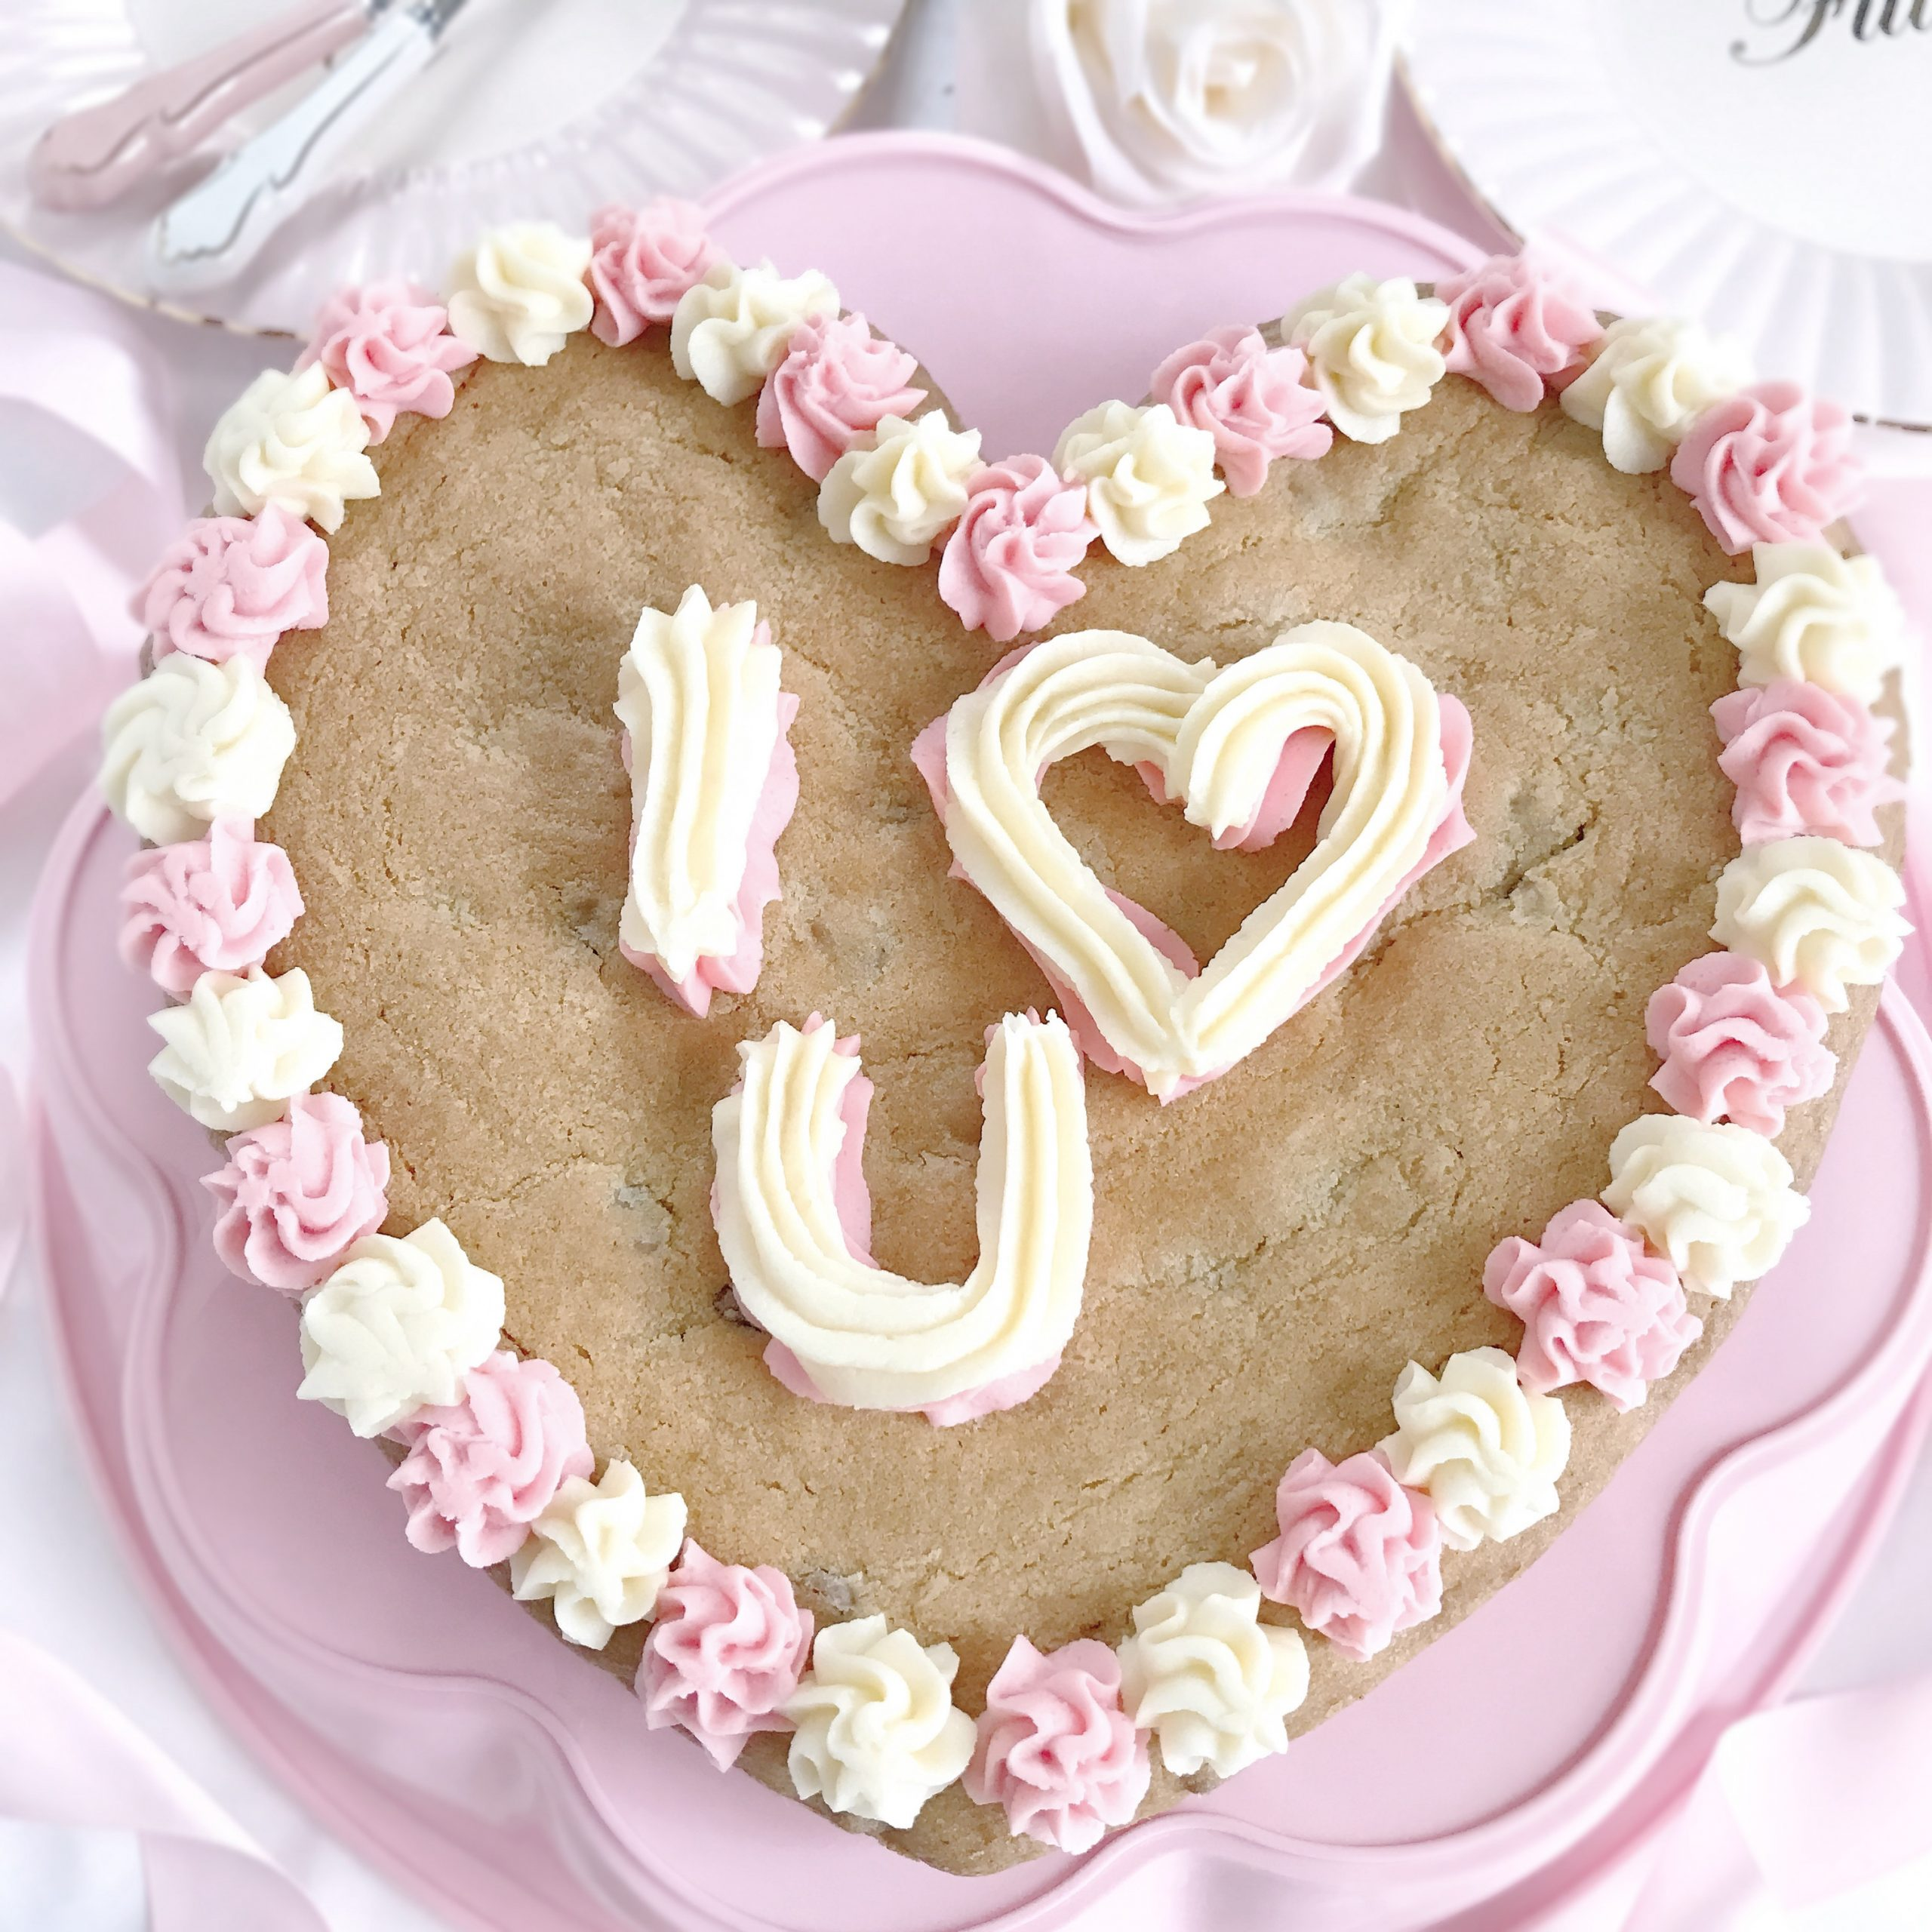 8 Sweet Ideas For Your Valentine's Baking ~ Giant Heart Iced Cookie